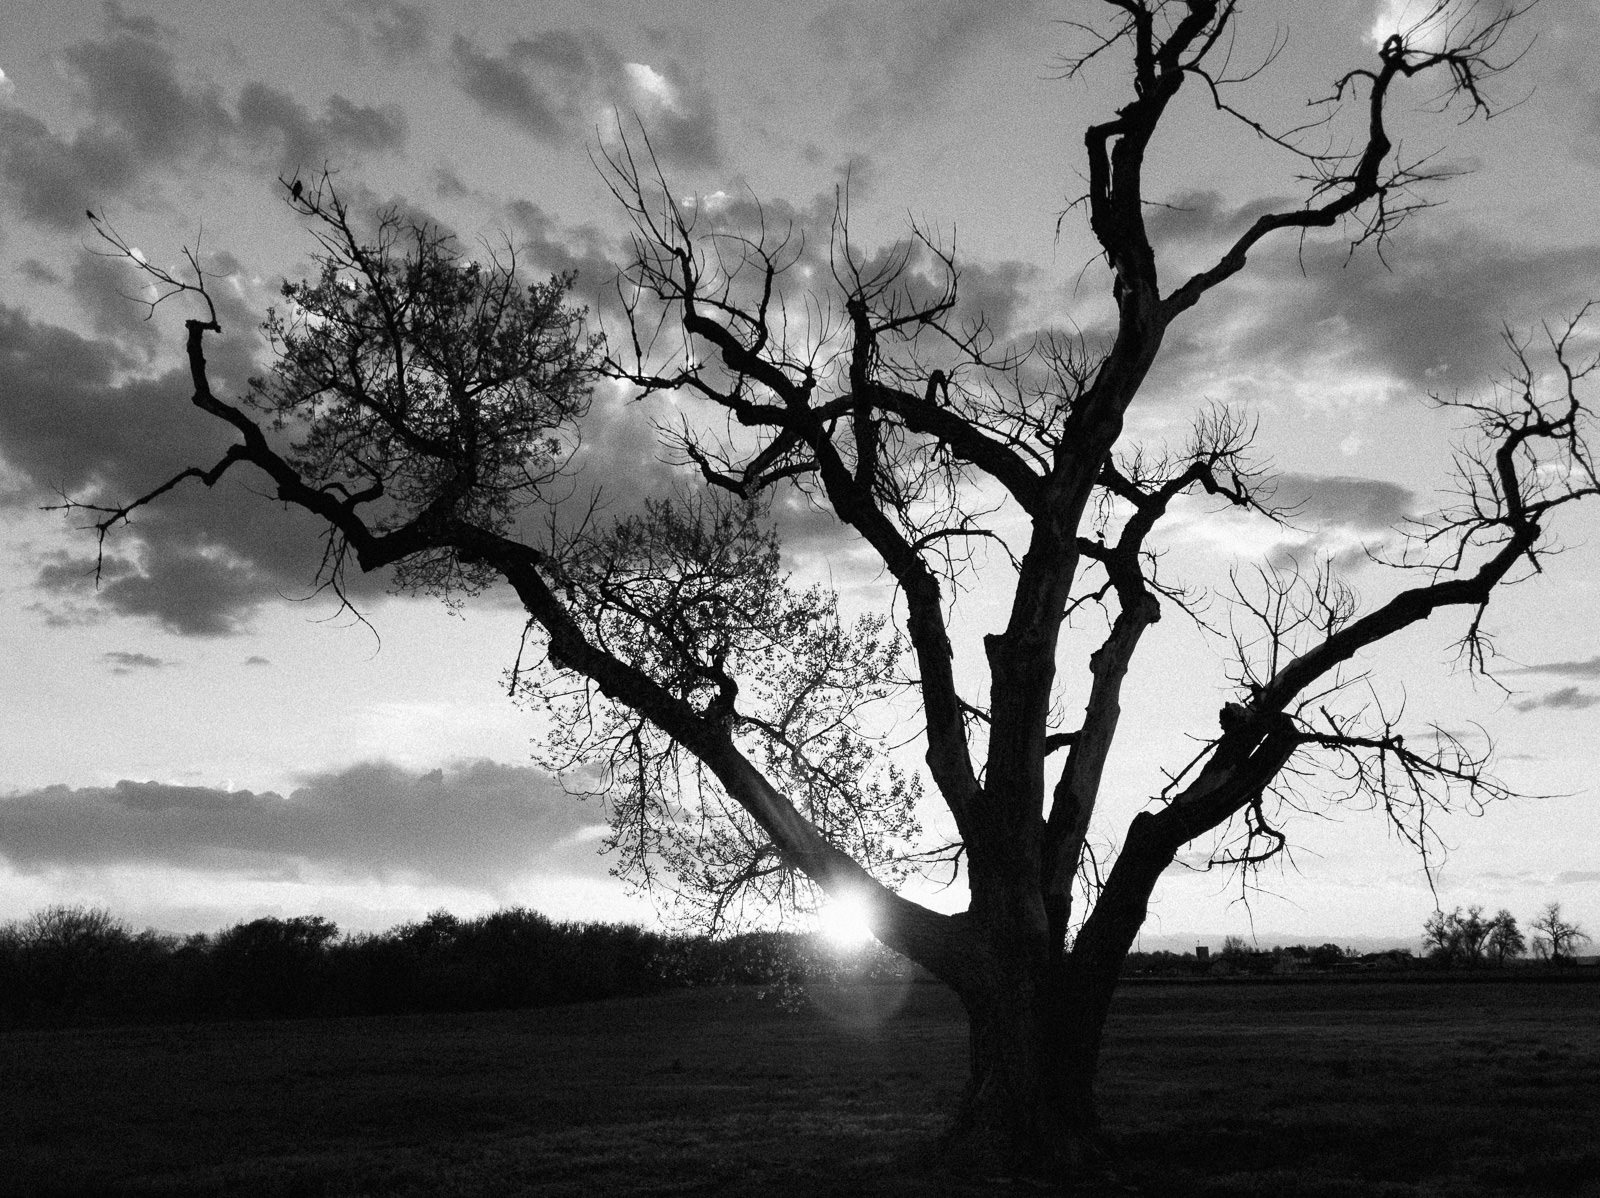 Day 136- 365 Day B&W Photo Challenge - Sunset near an old tree by the 17 Mile House - Google Pixel 3, VSCO Neopan 400 Film Simulation